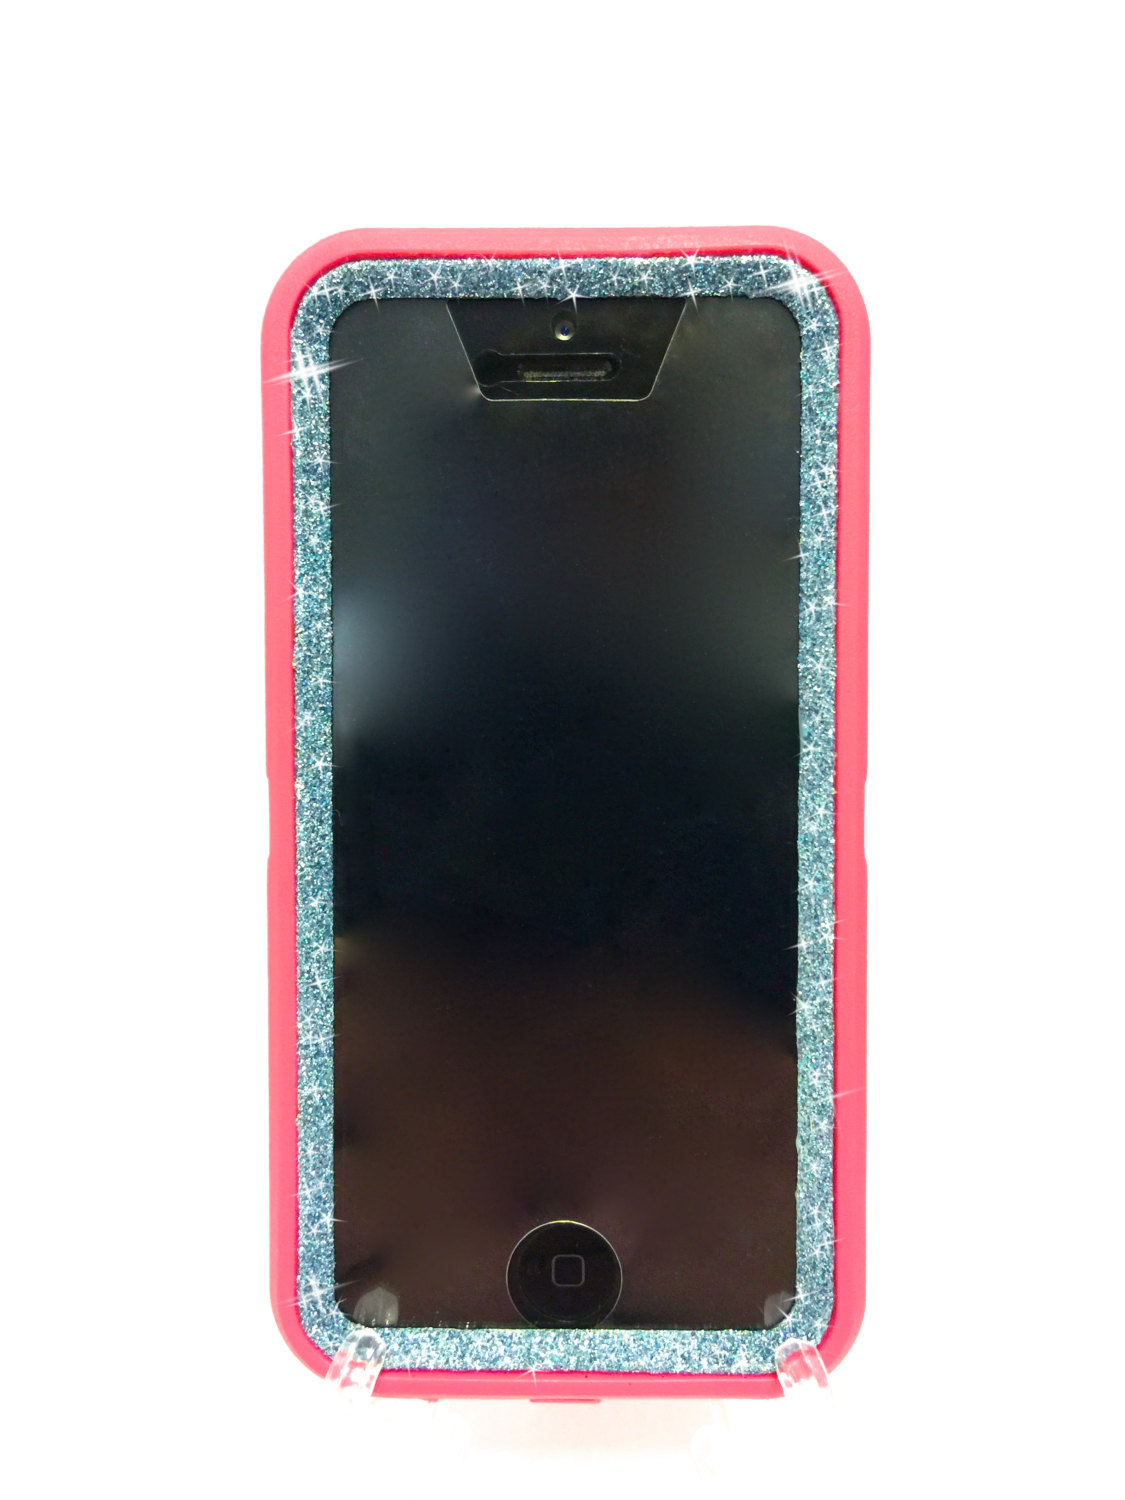 the best attitude fa0e1 38a98 iPhone 5c Glitter OtterBox Defender Series Case Sparkly Bling Custom Case  Peony pink/ blue topaz.